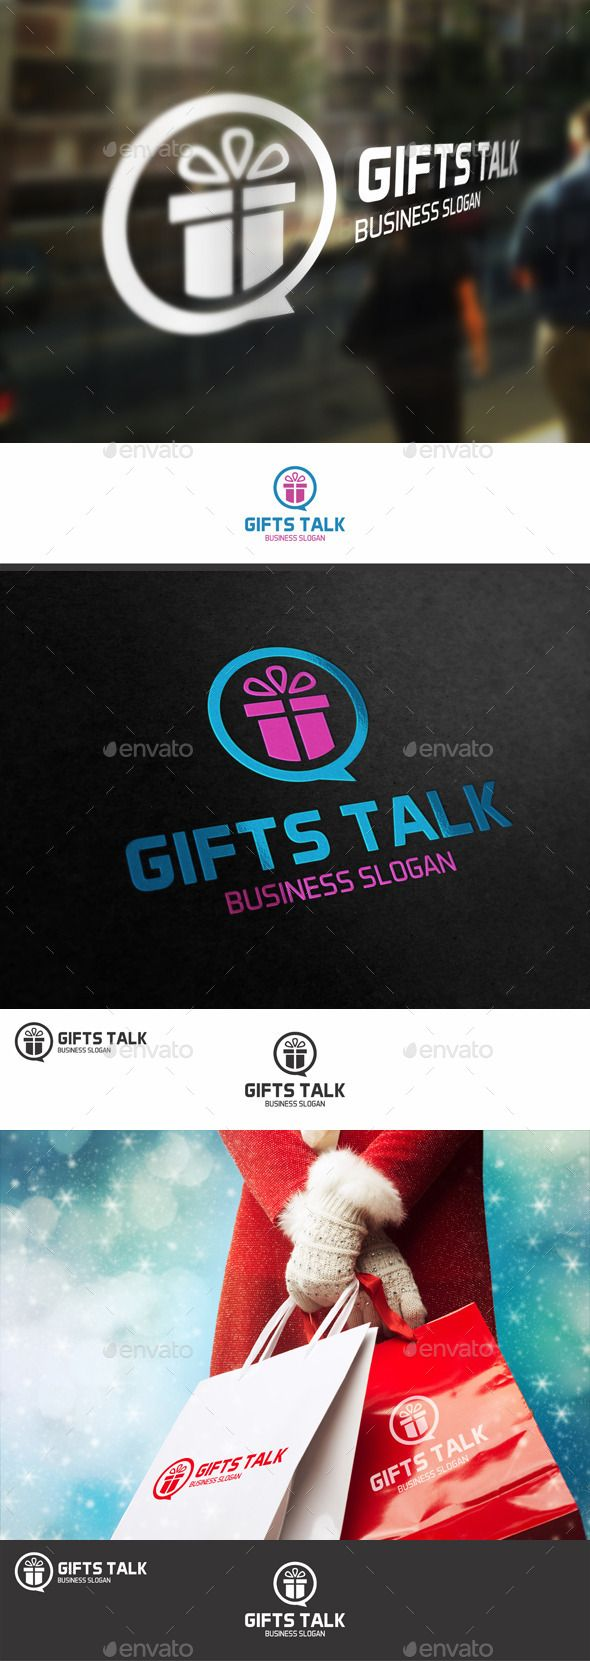 Talk About Gifts Logo - Gifts Talk Logo – Excellent logo in vector format for gifts shop logo, gift market logo, sell gifts, present shop, shops, e-shops, online shop, e-market, tv shop, shopping tv, online shopping, e-store, retail businesses, social network, holiday chat, forum, gifts service, souvenir business, shopping stores, tech support, and related companies. You can easily change the text. You can freely experiment with color.